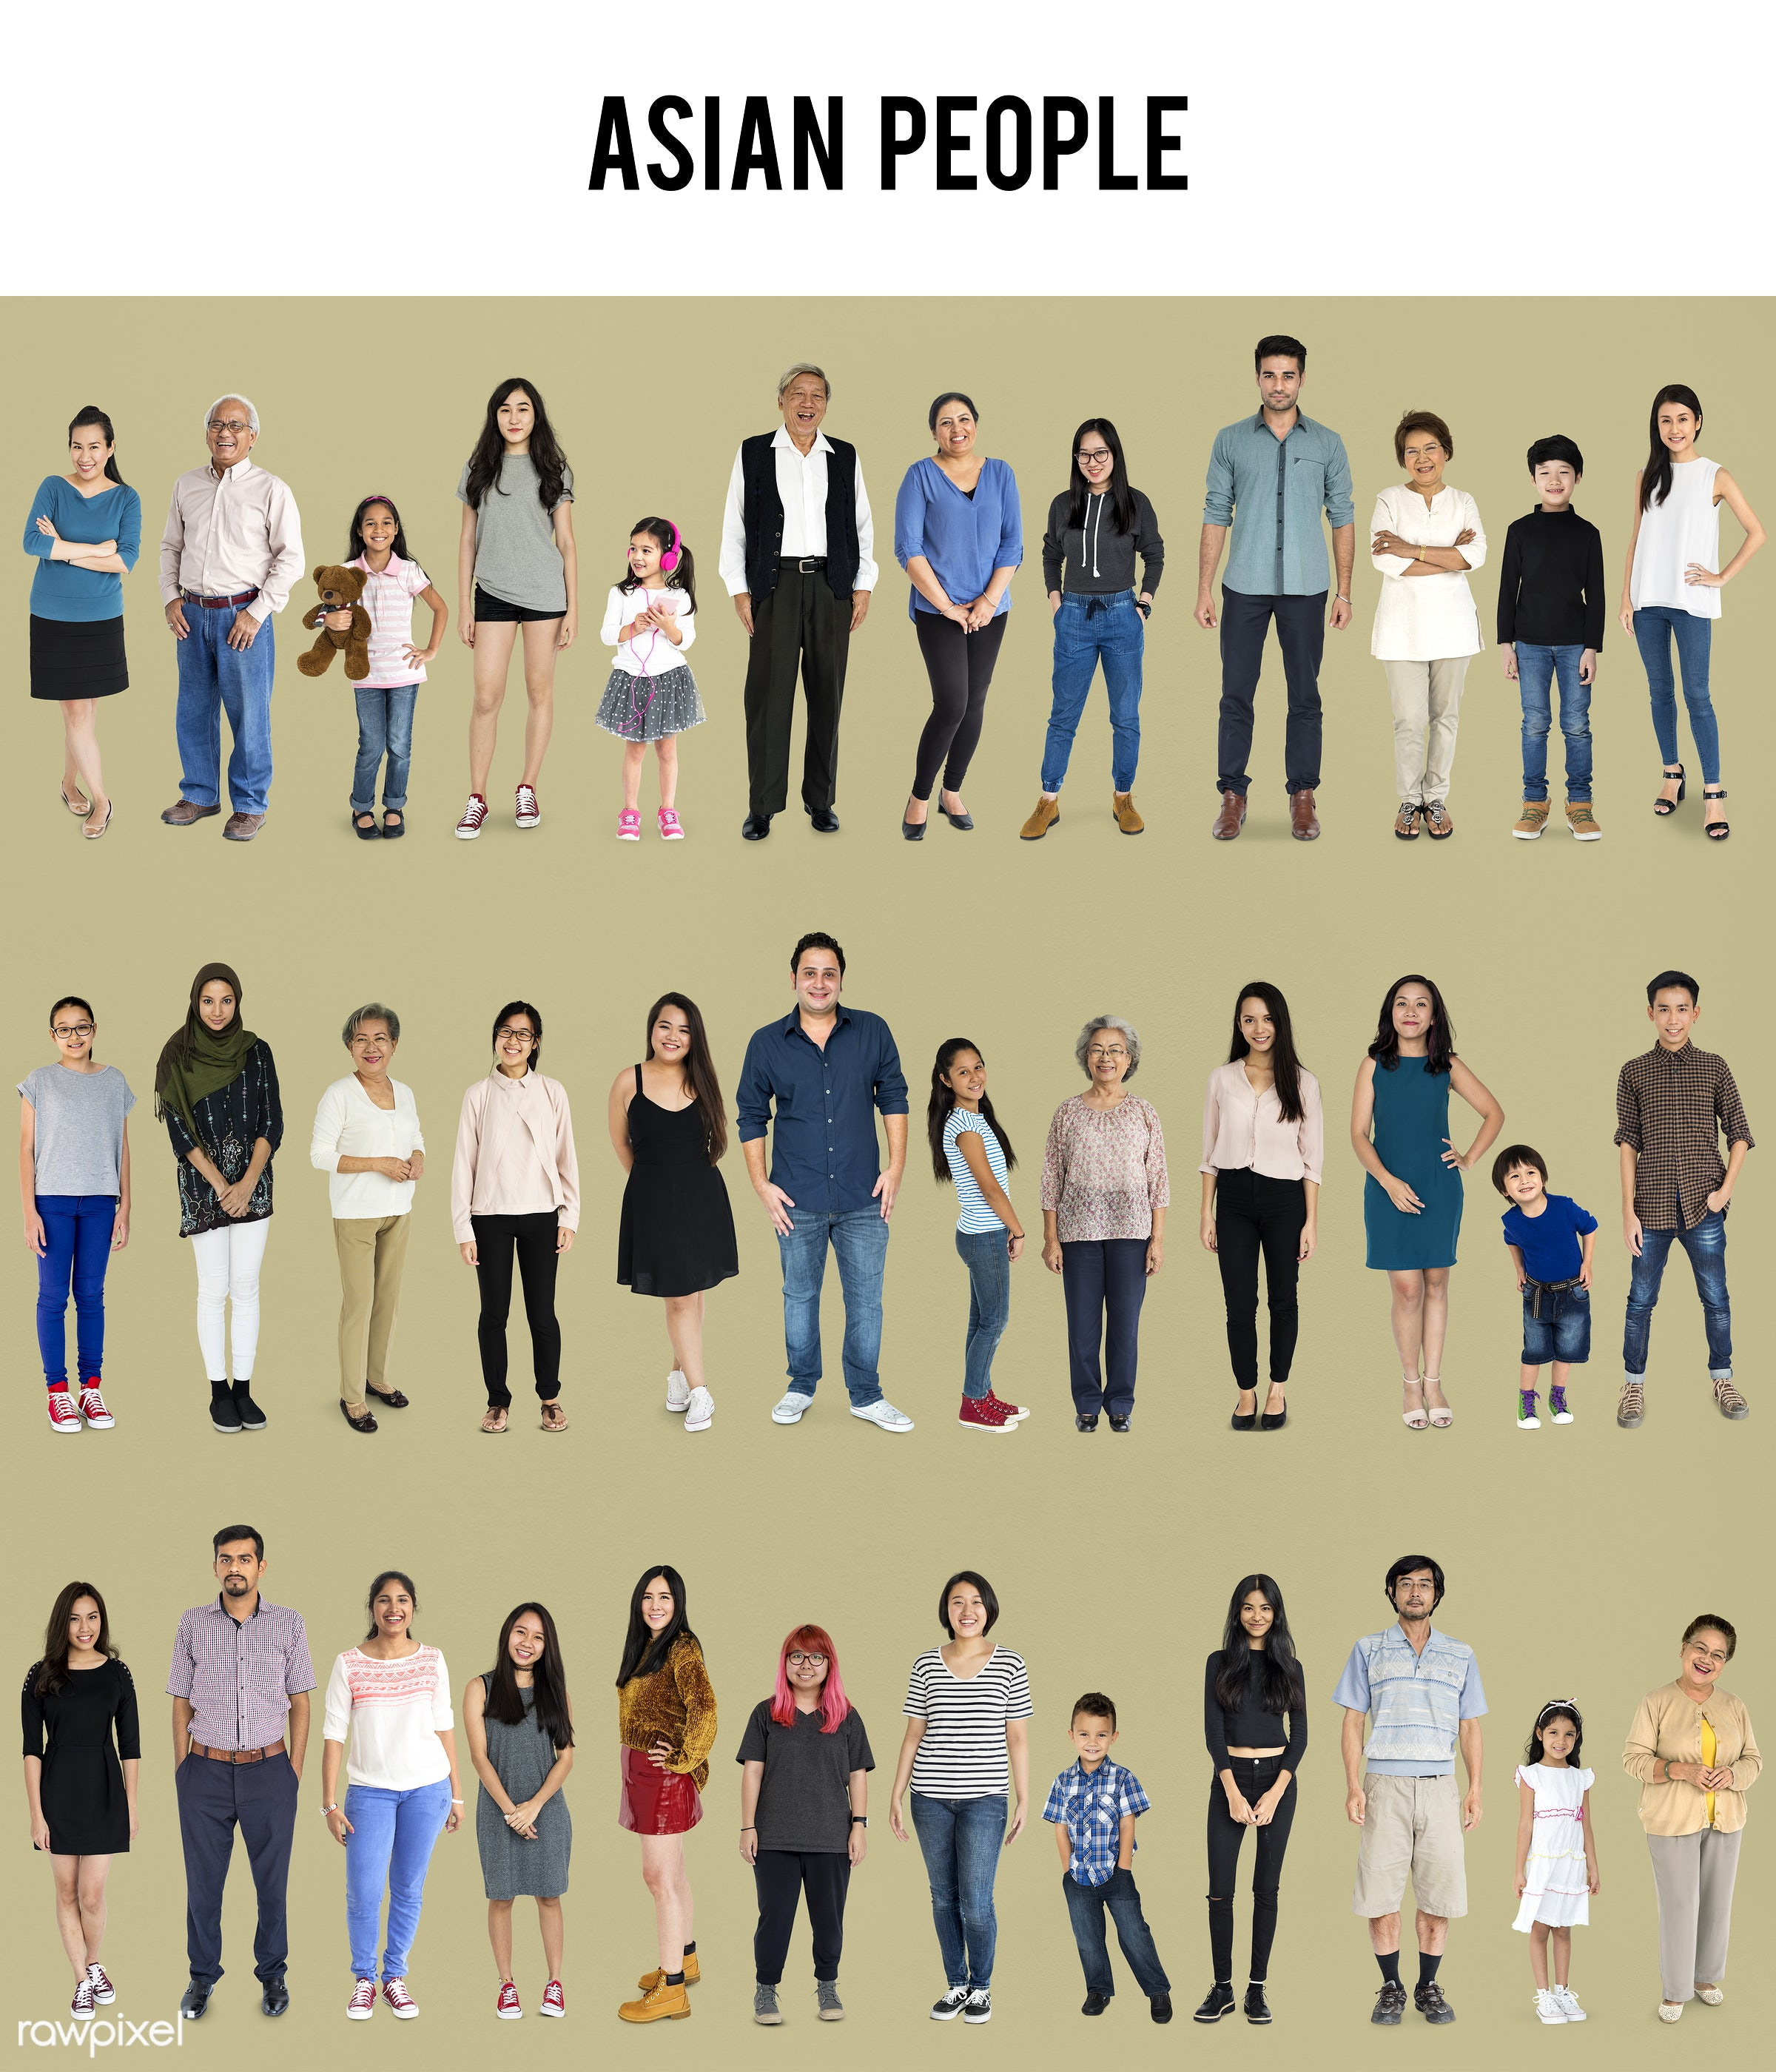 expression, full length, diverse, personality, people, race, caucasian, asian, woman, lifestyle, studio squareset,...